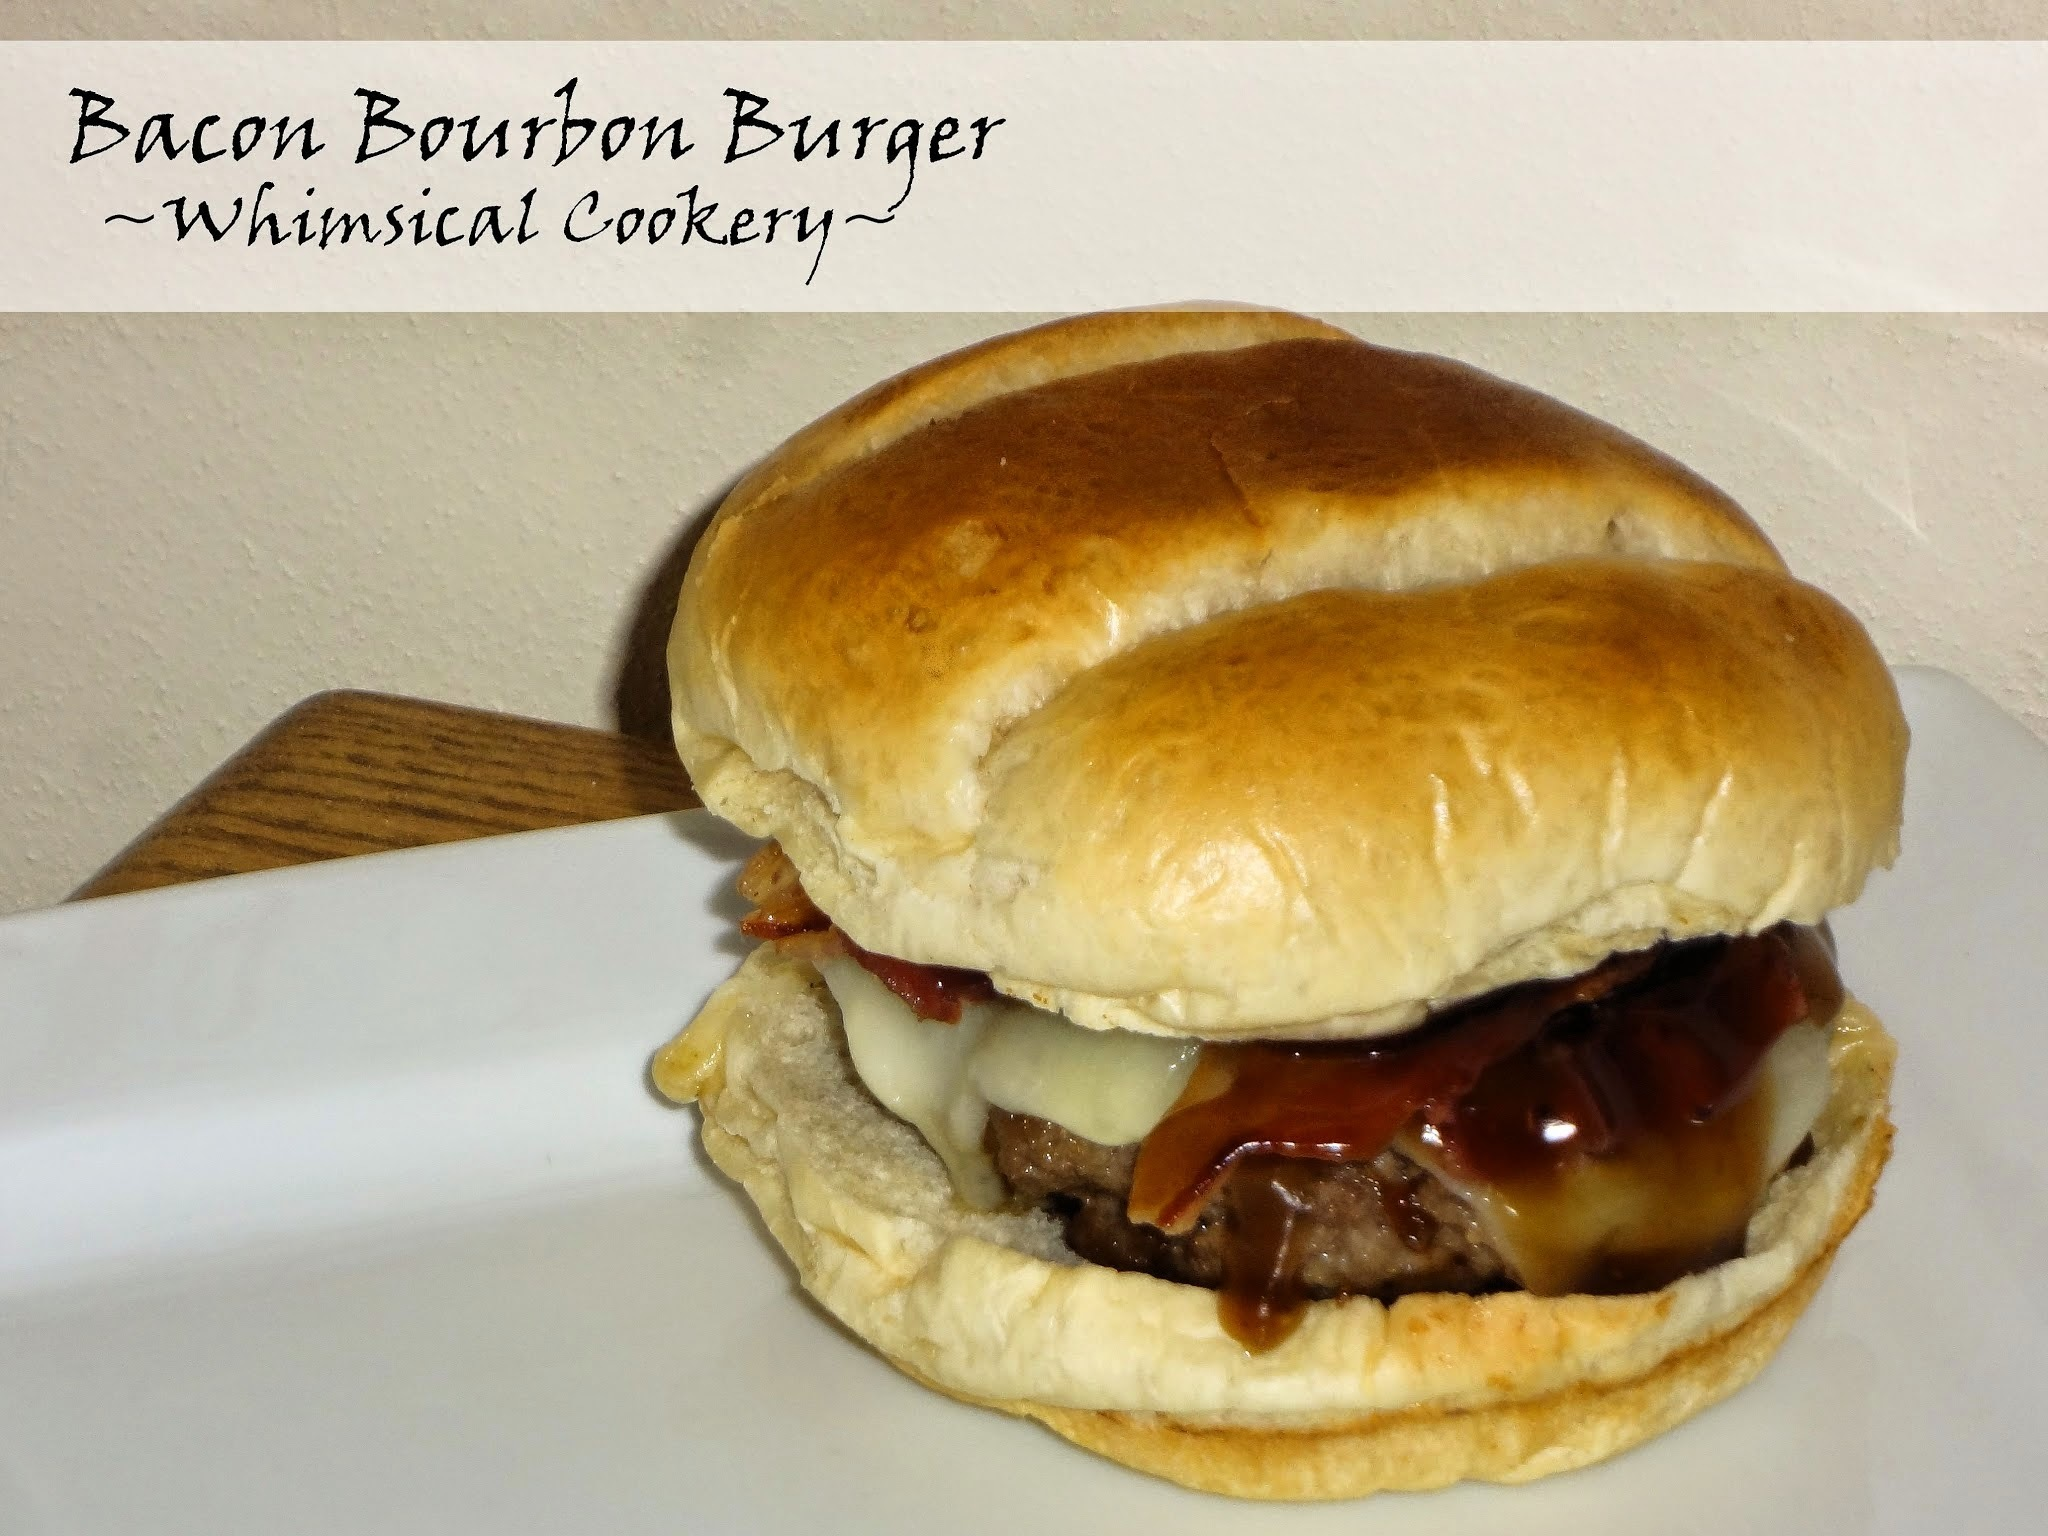 Bacon Bourbon Burger